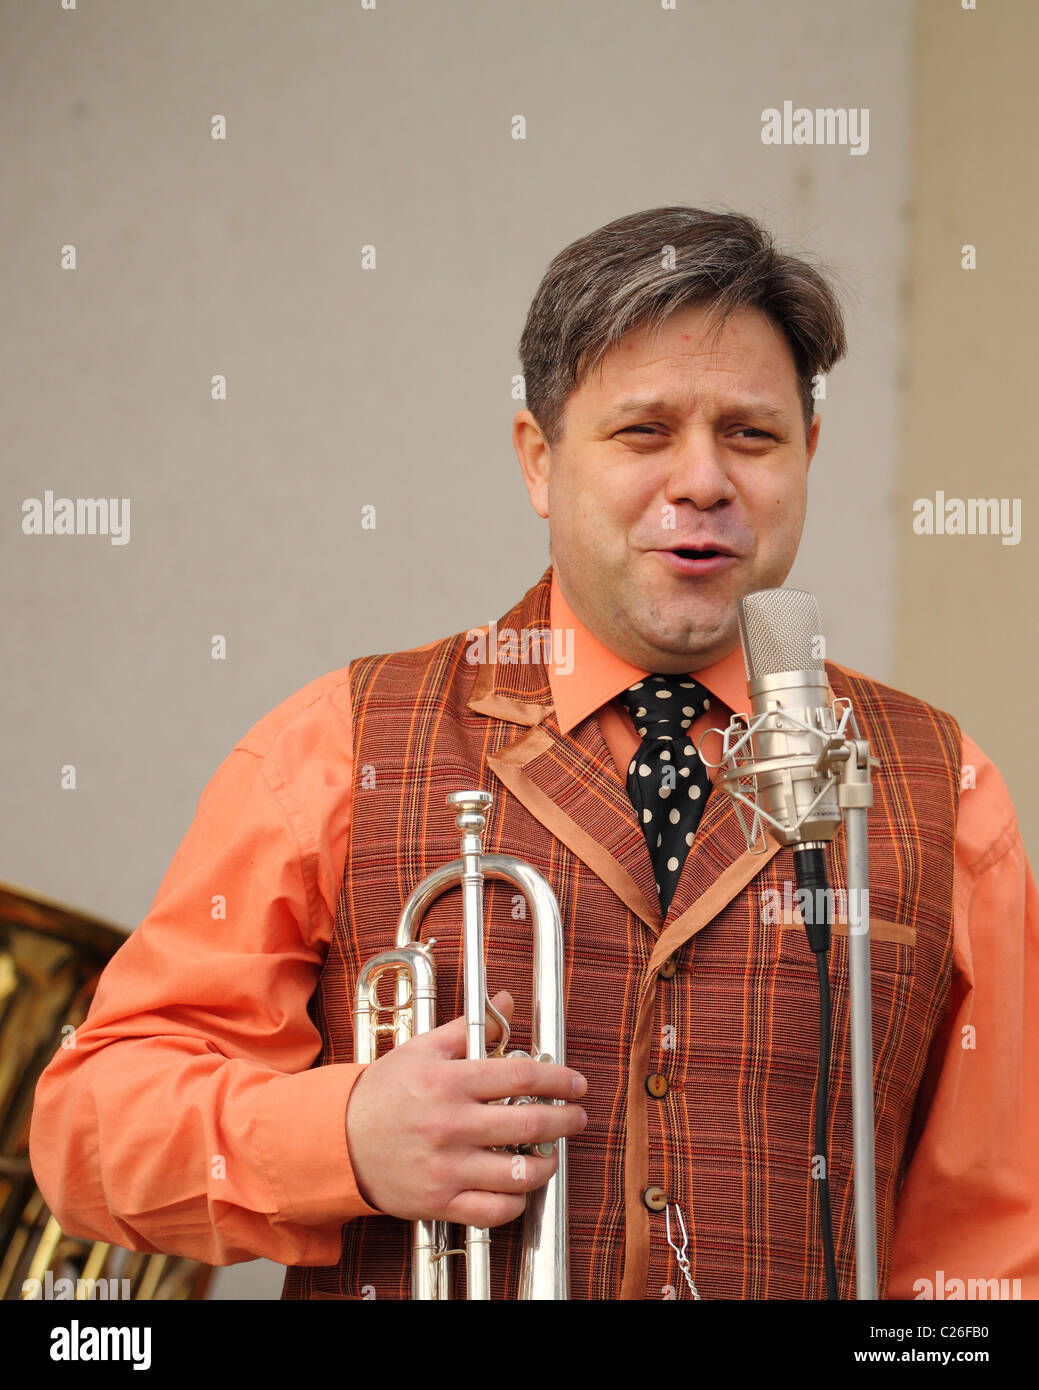 Musician from the old time band Funny Fellows with the jazz trumpet. - Stock Image